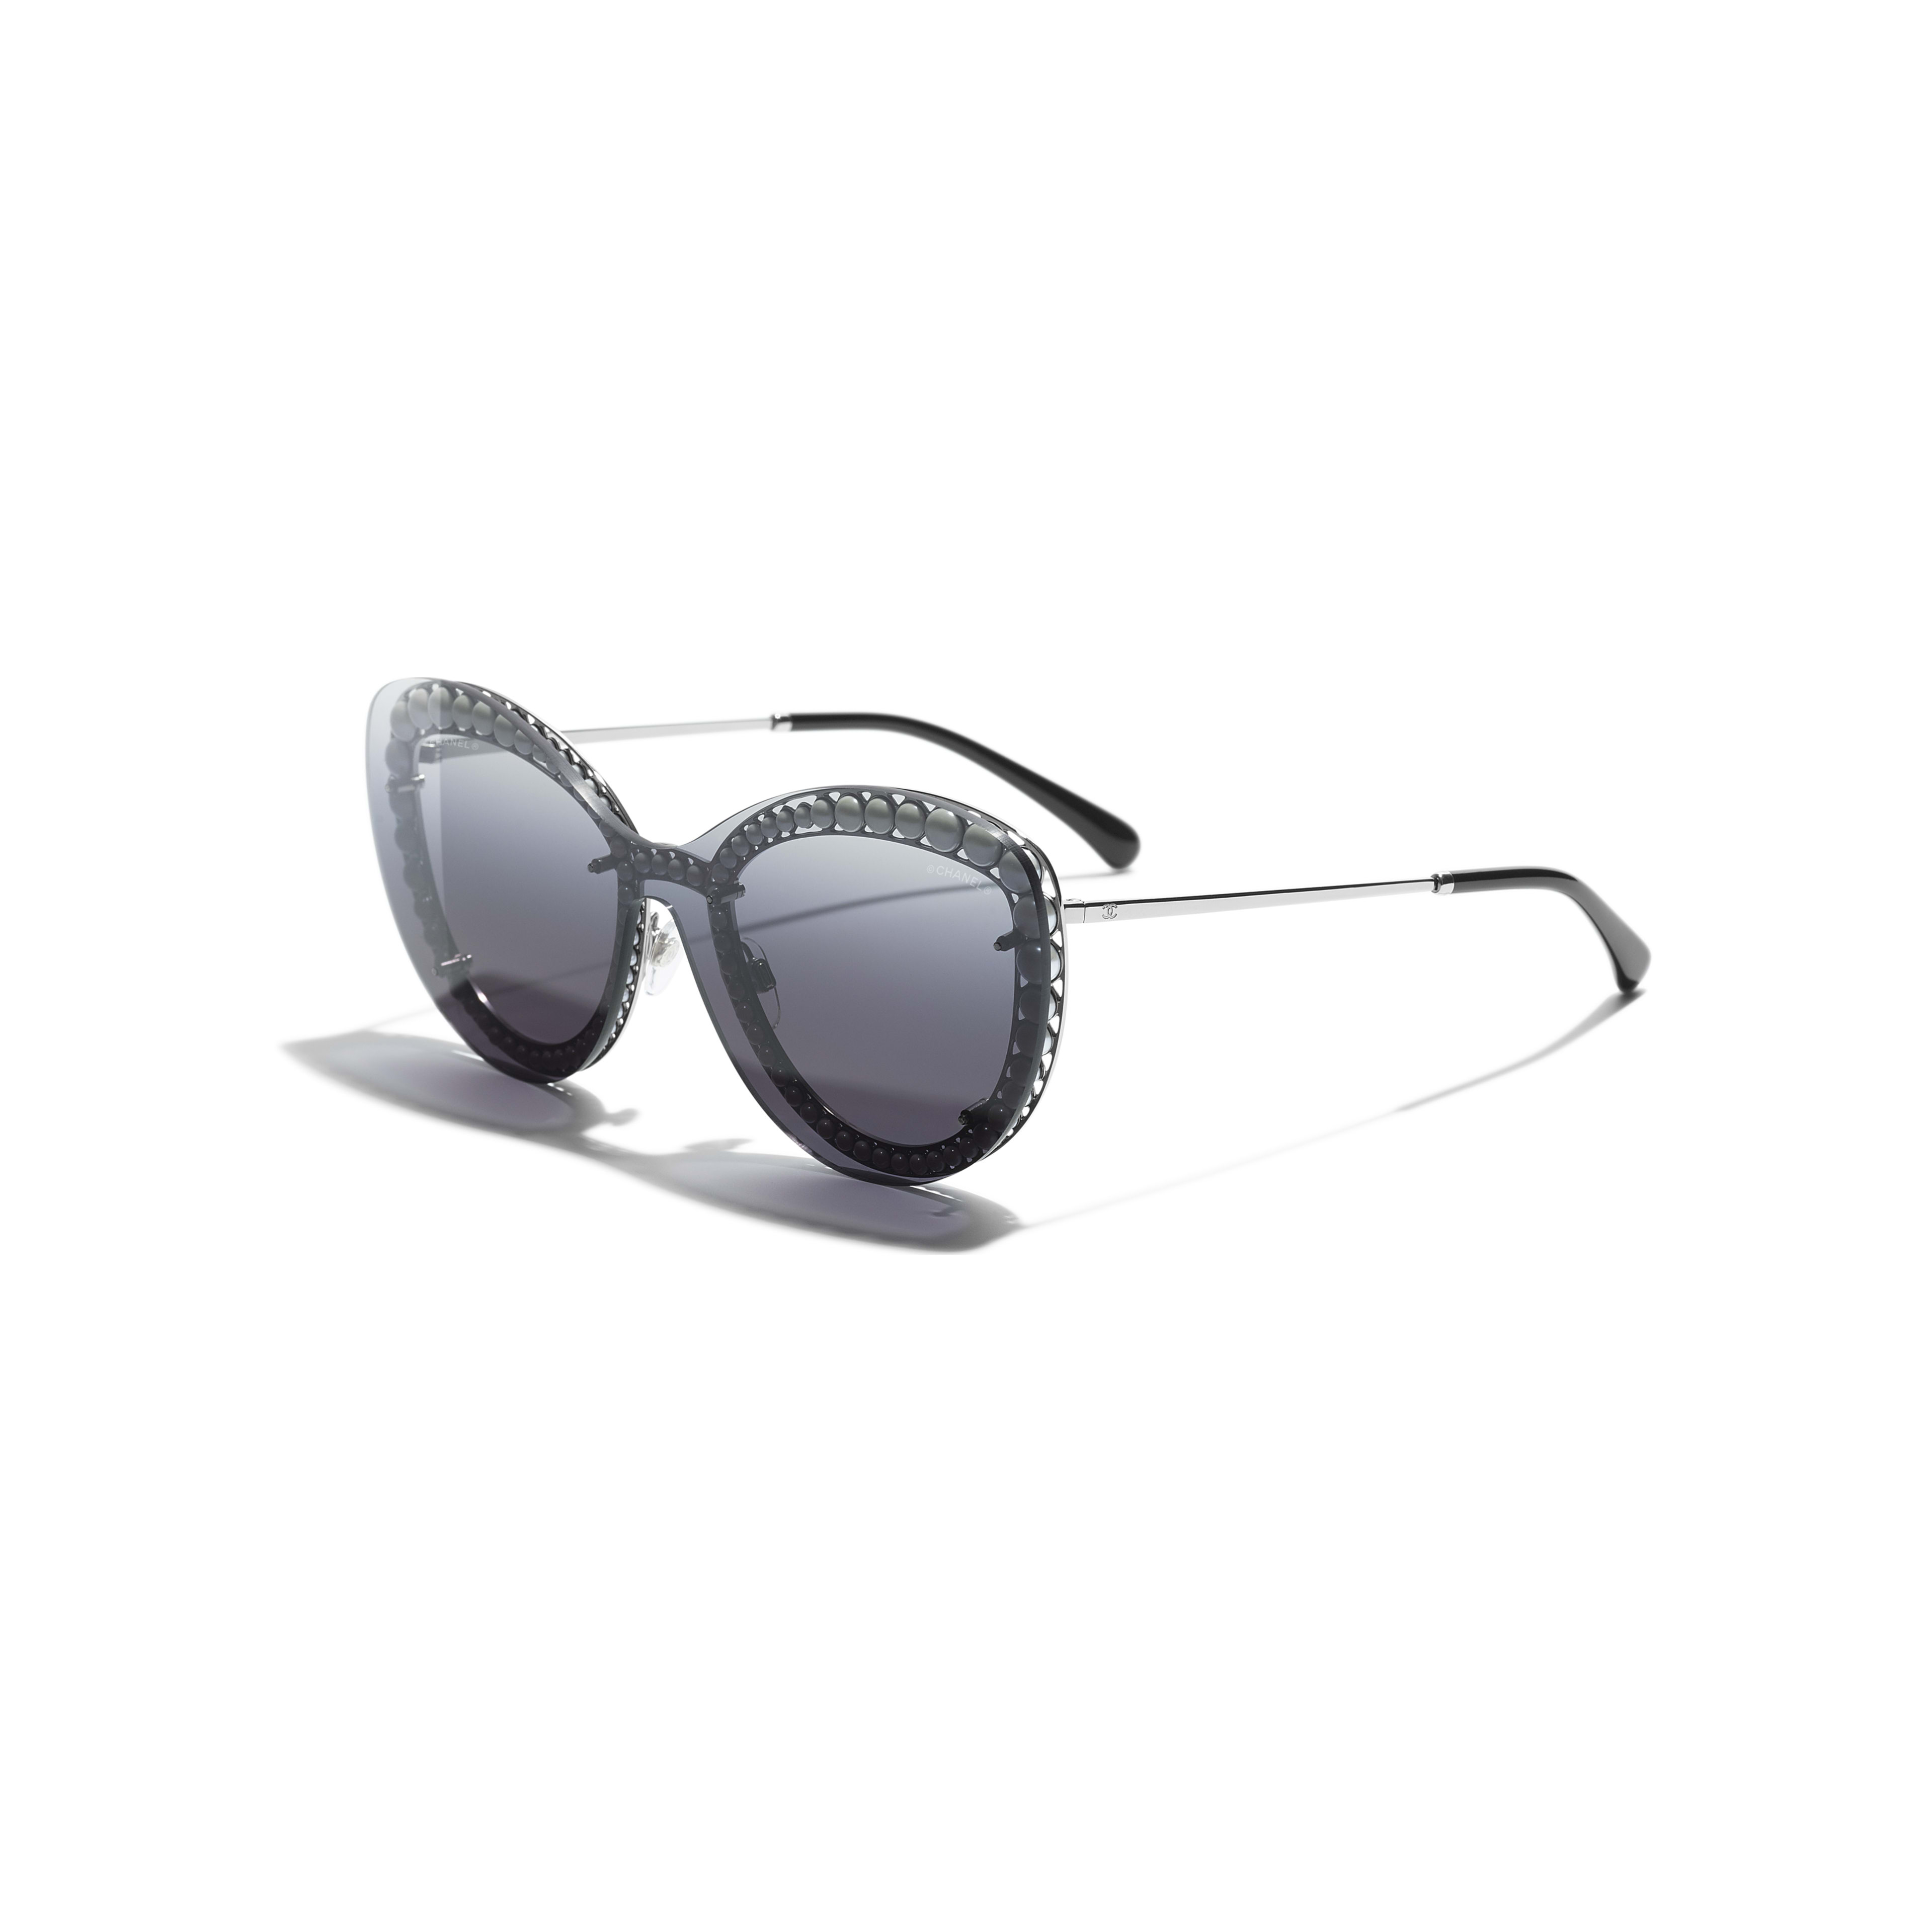 Butterfly Sunglasses Metal & Imitation Pearls Silver -                                                               view 1 - see full sized version